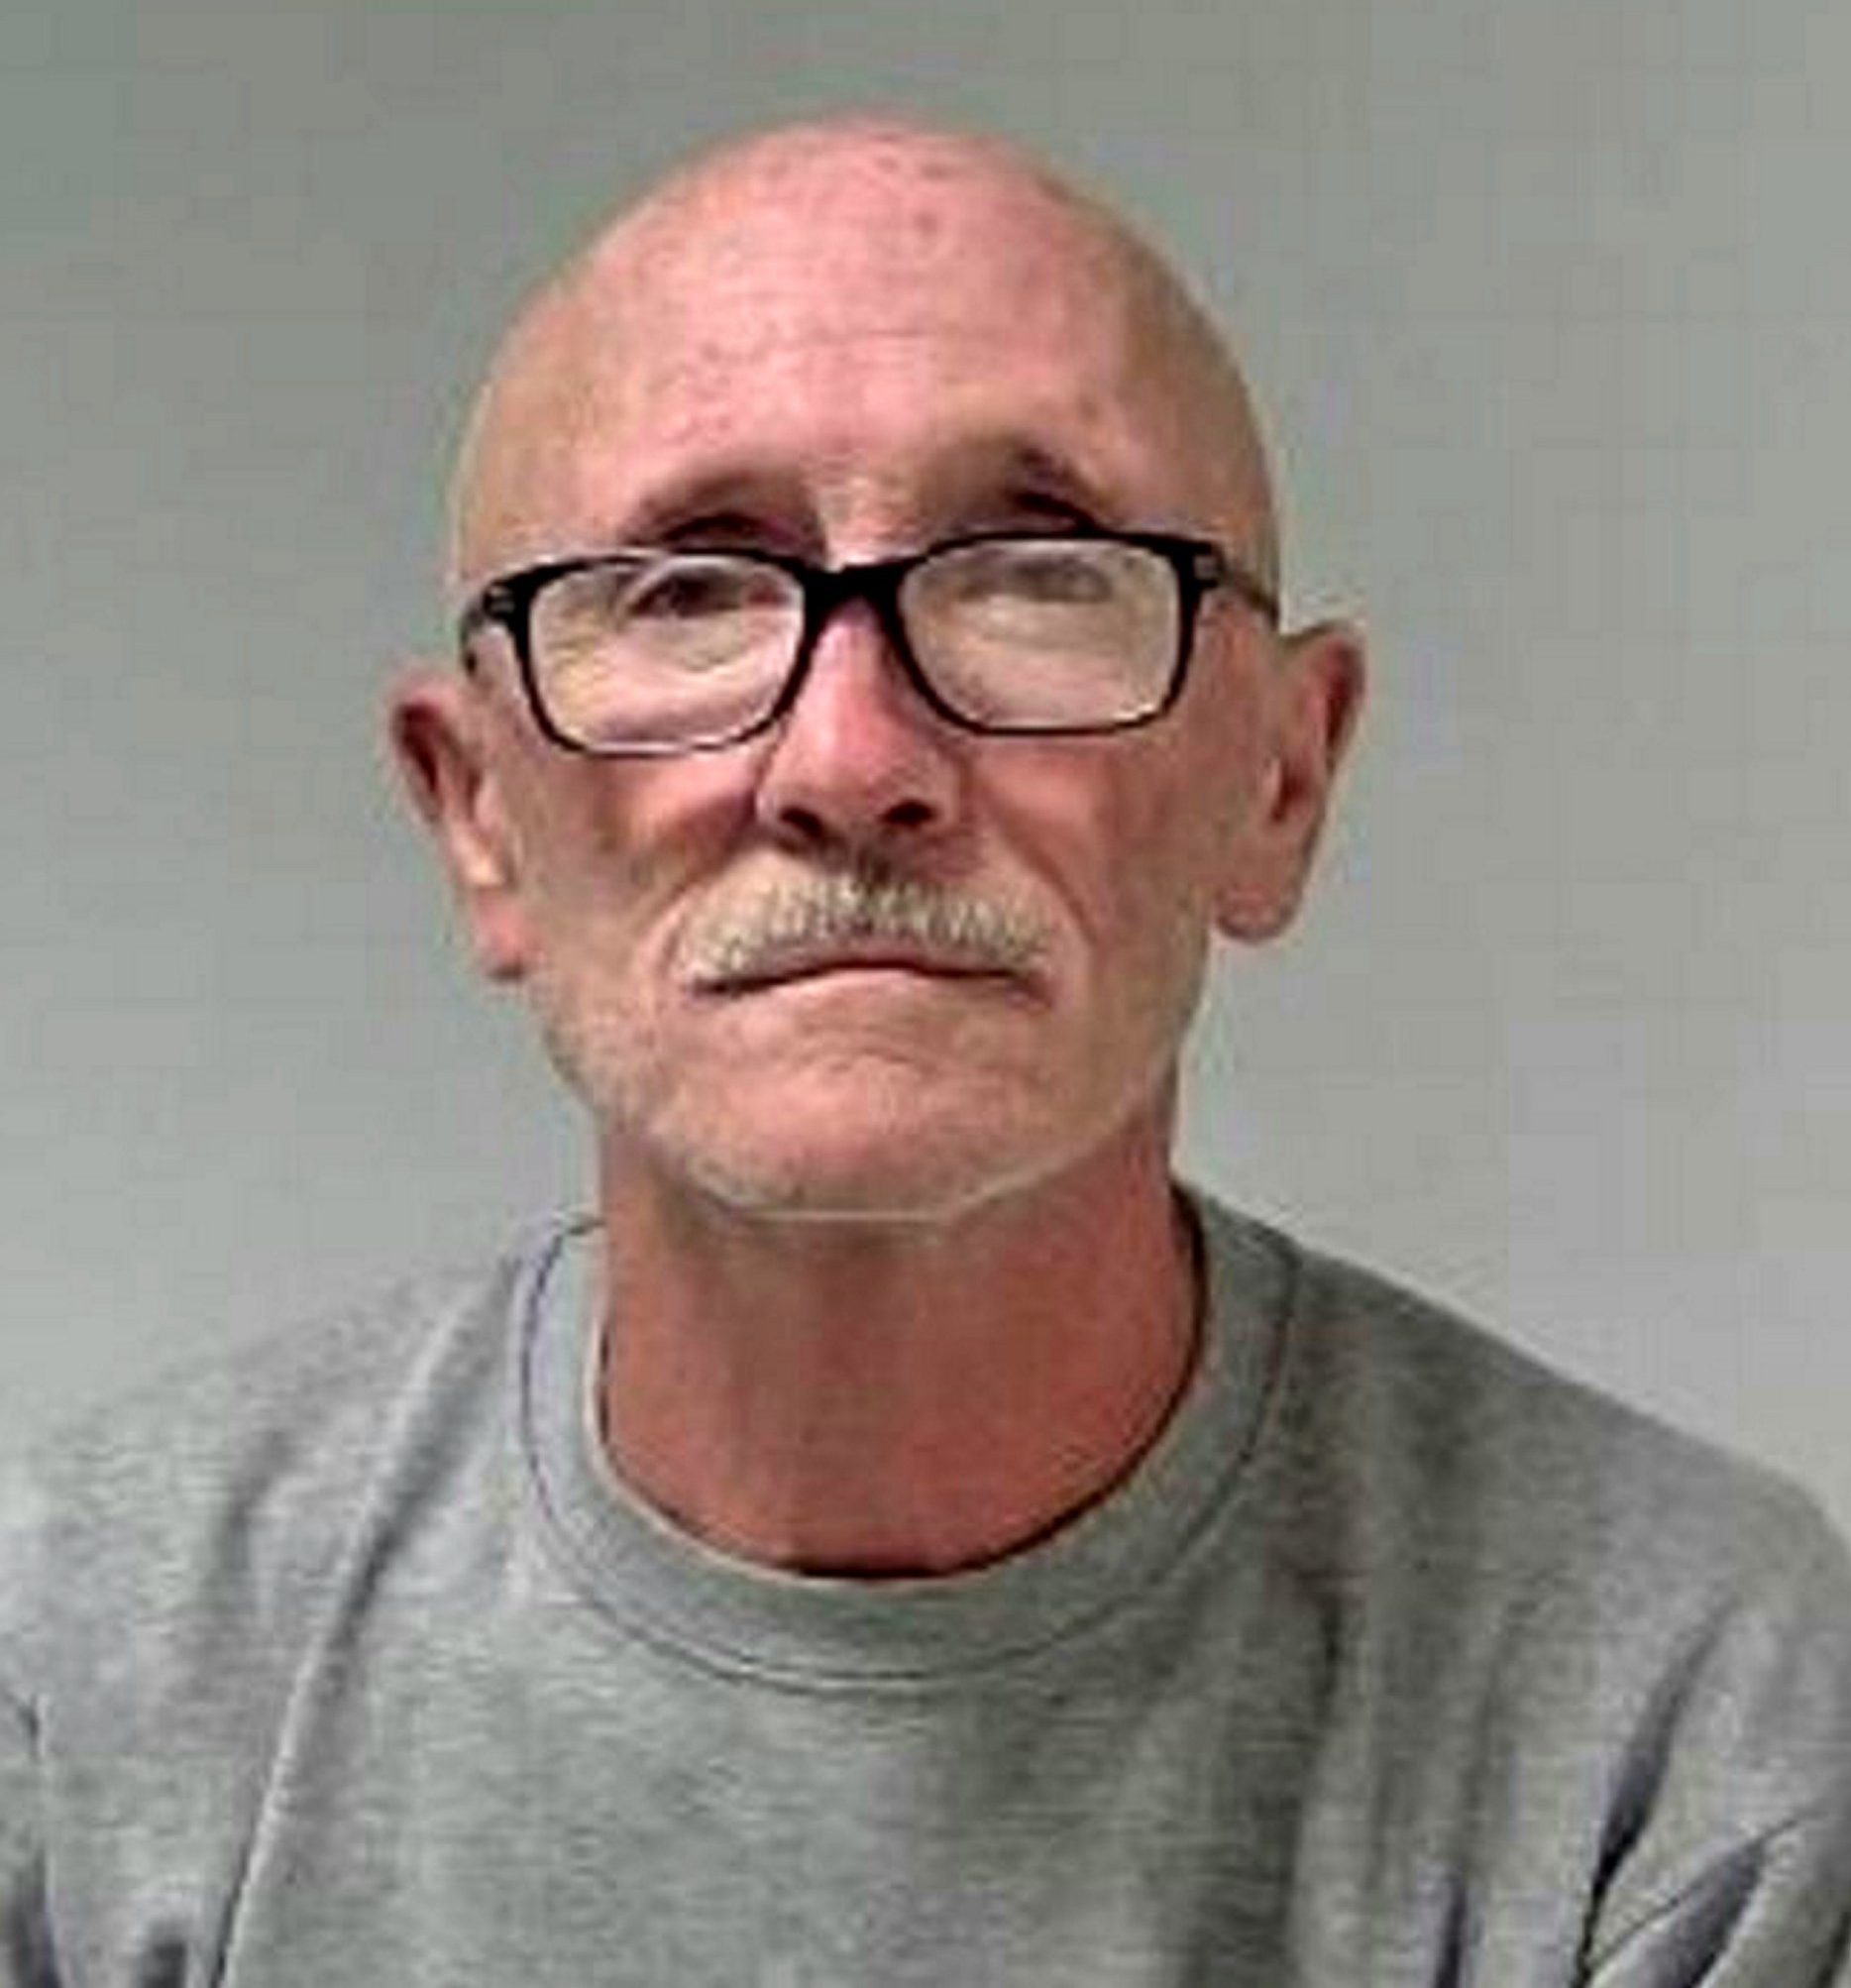 Declin Dreslin. See SWNS story SWMDperv; A drunk pervert who shoved his head between a young woman?s breasts in broad day light is jailed. Declin Dreslin, 60, had buried his face in the 19-year-old student?s chest whilst she waited for her boyfriend on August 8 this year. He held his head there for 10 seconds during the attack which took place outside WHSmiths, High Street, Worcester at around 1.20pm. The perv was caught after a witness had taken a picture on her phone of him after the assault whilst he was sat on a park bench. The 60-year-old had a previous conviction for driving with excess alcohol and being drunk and disorderly in public. Dreslin, of Barbourne Road, Worcester had admitted the attack and was jailed for four months at Worcester Crown Court on Wednesday (31/10).